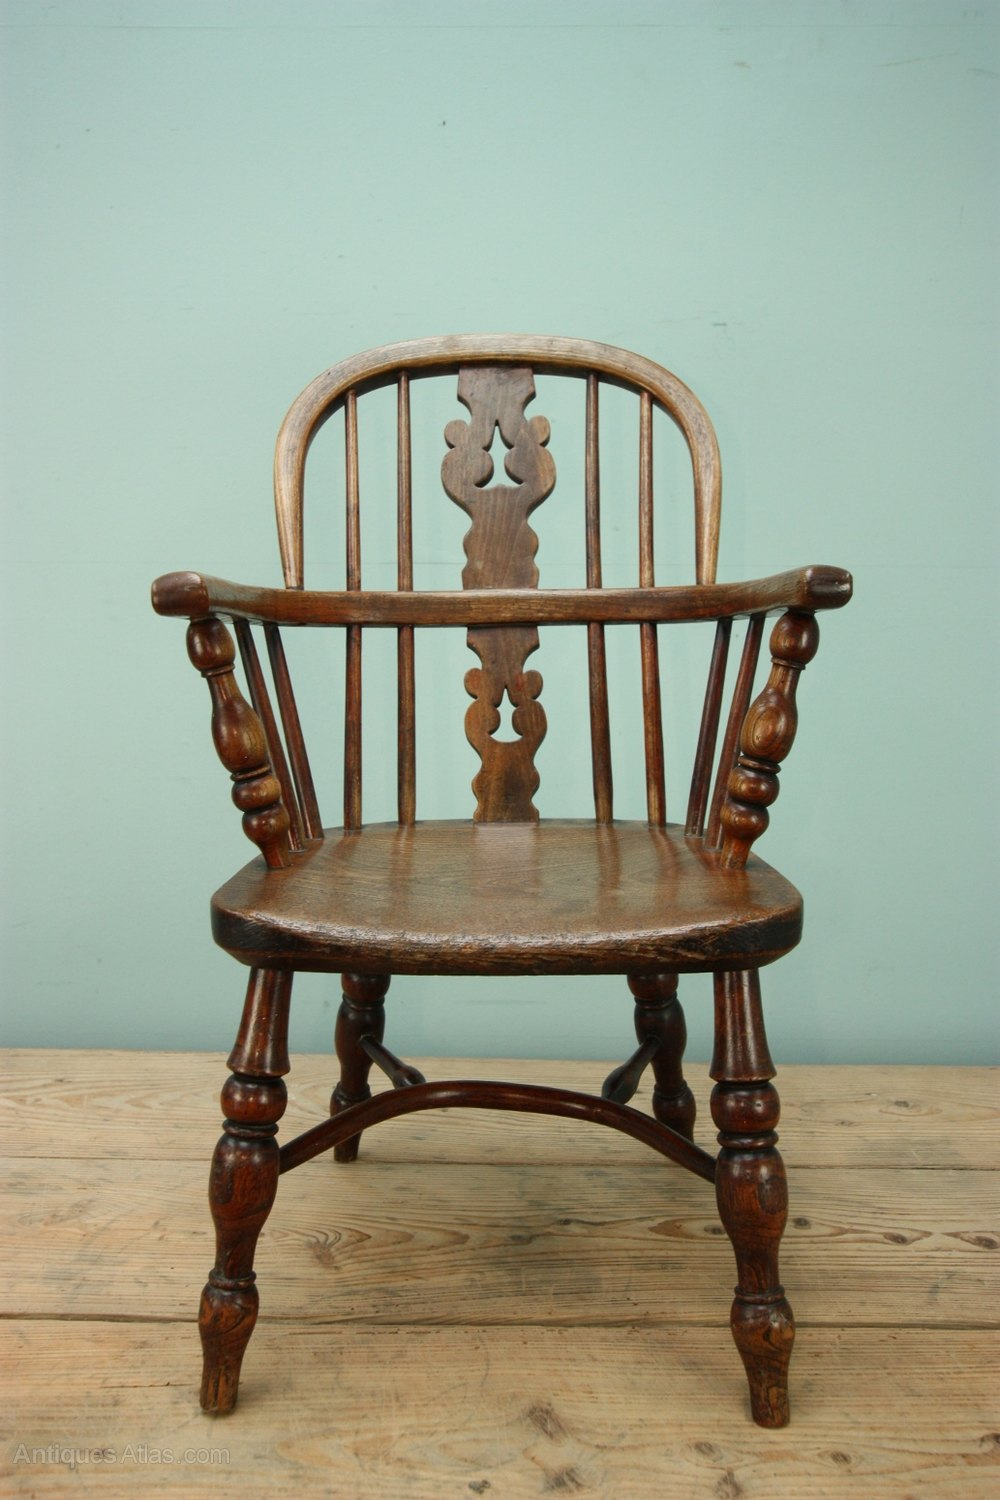 Antique Country Childs Chair ... - Childs Antique Windsor Chair. - Antiques Atlas